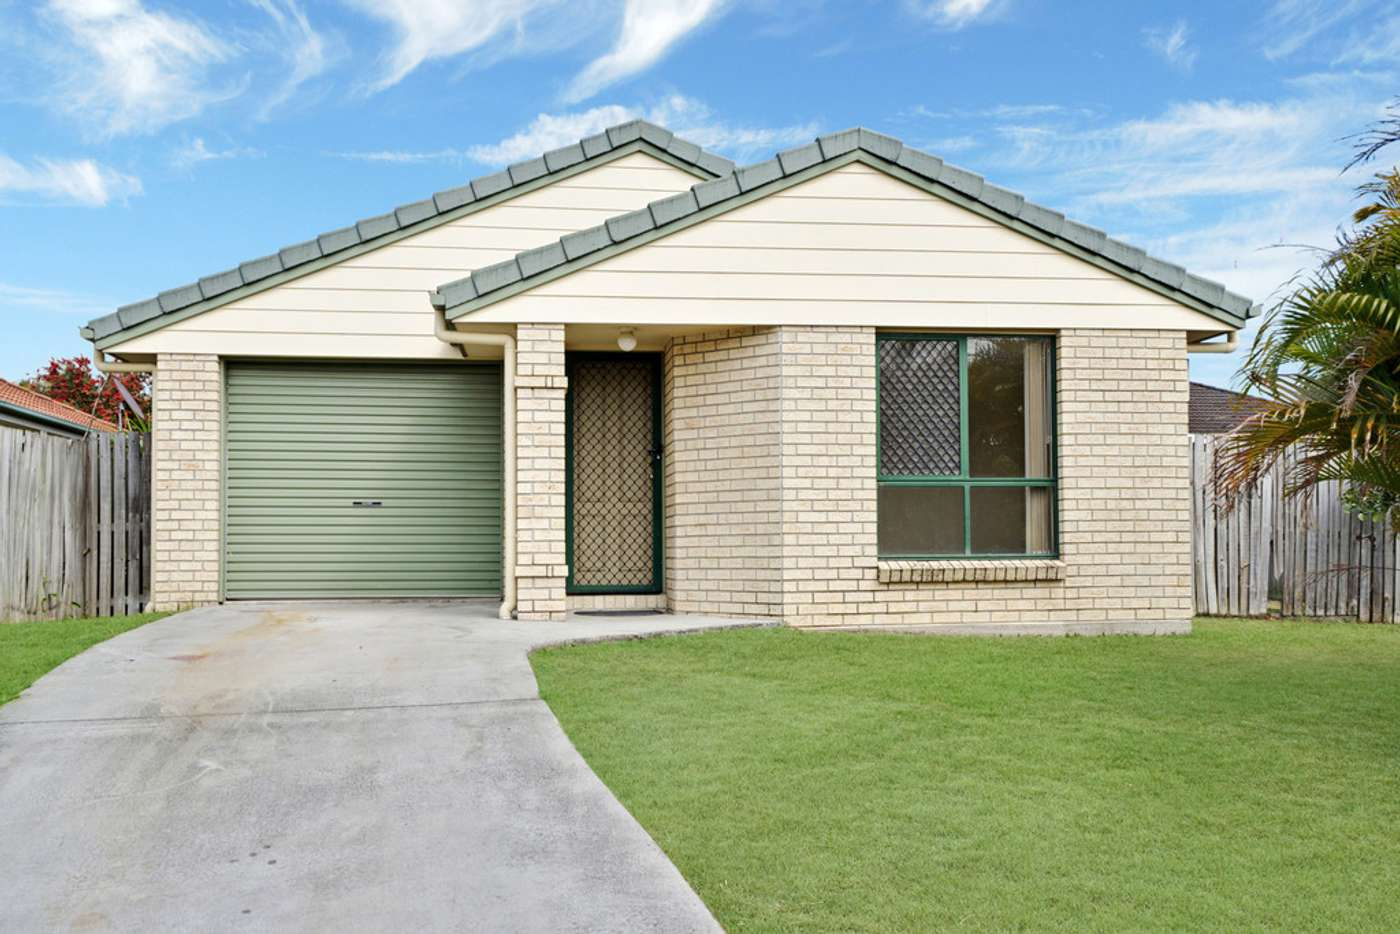 Main view of Homely house listing, 15/7 Billabong Drive, Crestmead QLD 4132